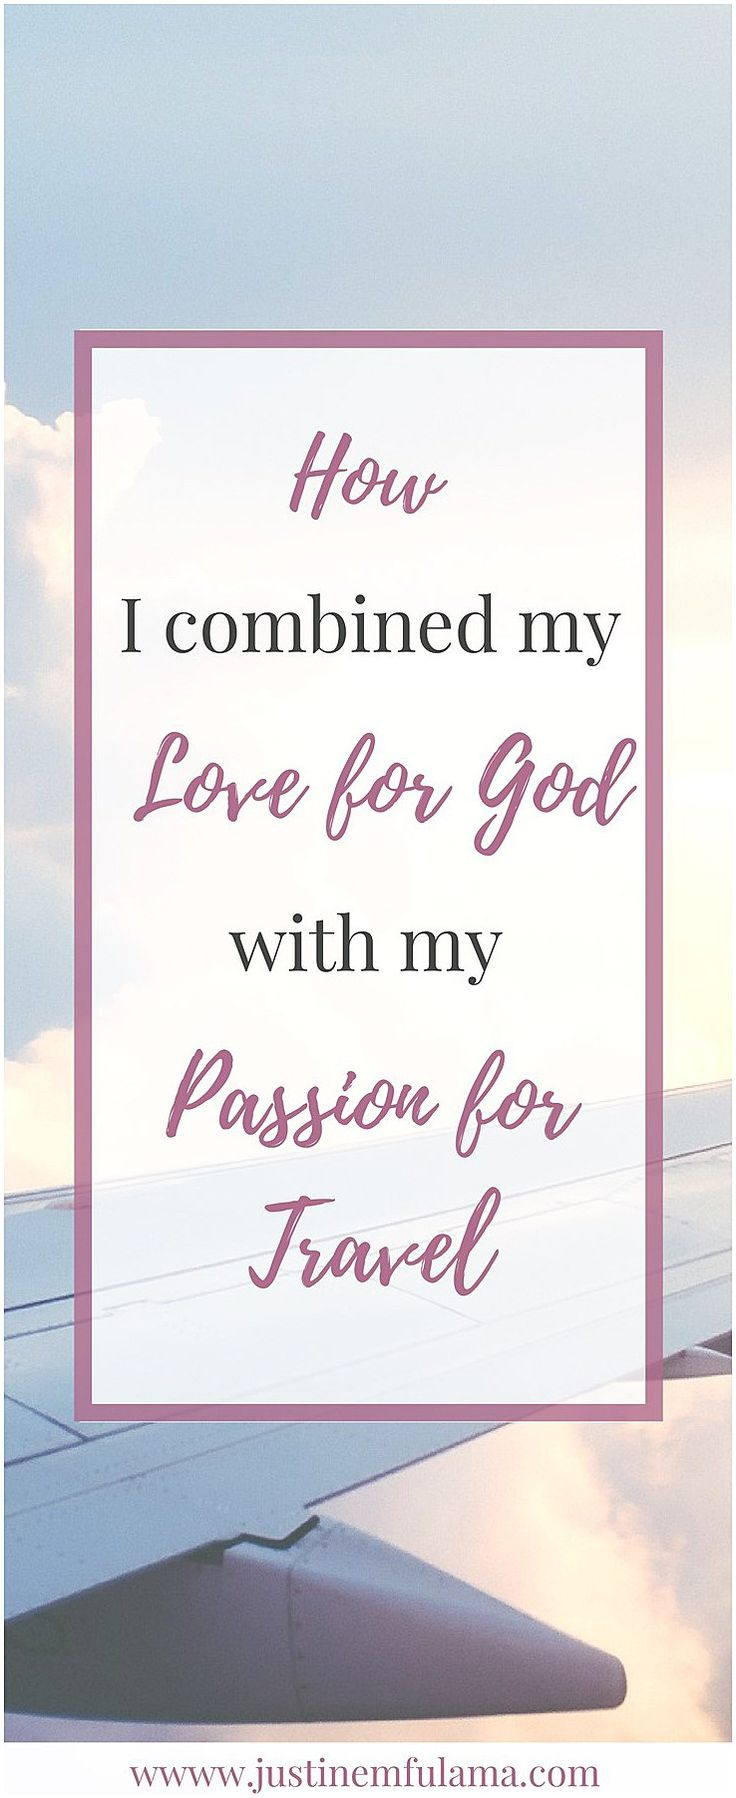 #Tattoos #Tattoo #SpiritualTattooIdeas Find out how I combined my Love for God and my Passion for travel. Follow me on my purposetrip that I am embark…